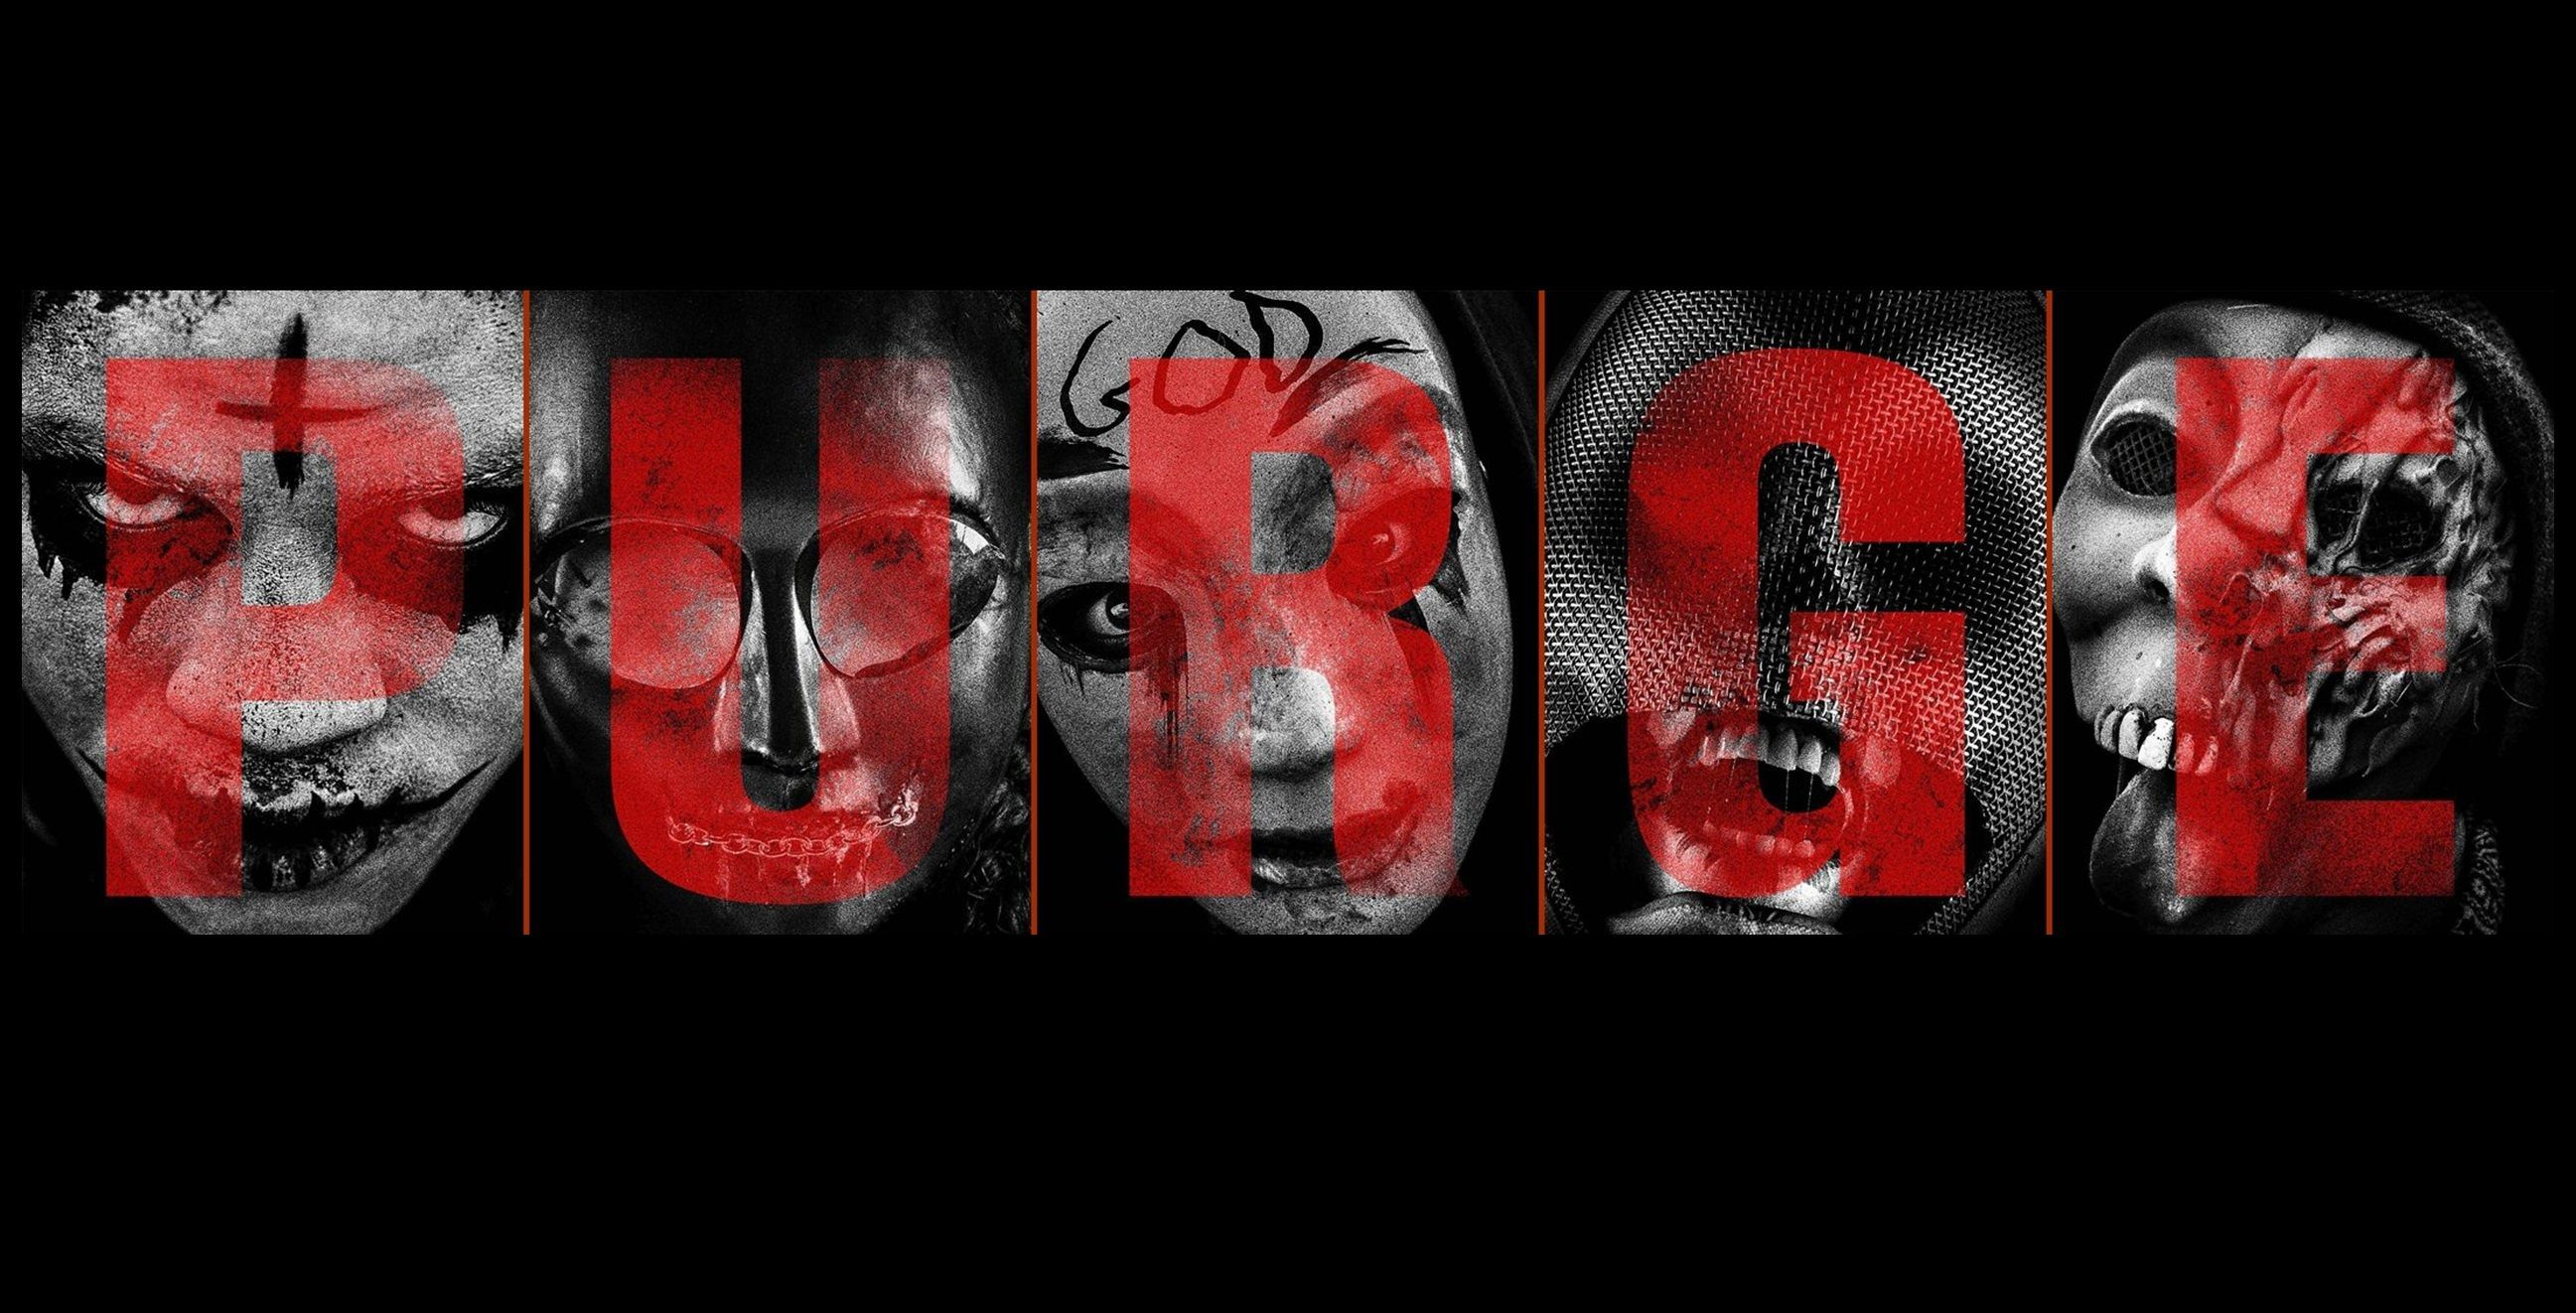 6 The Purge Election Year Hd Wallpapers: Thought Experiment: 5 Consequences Of A Real Life 'Purge